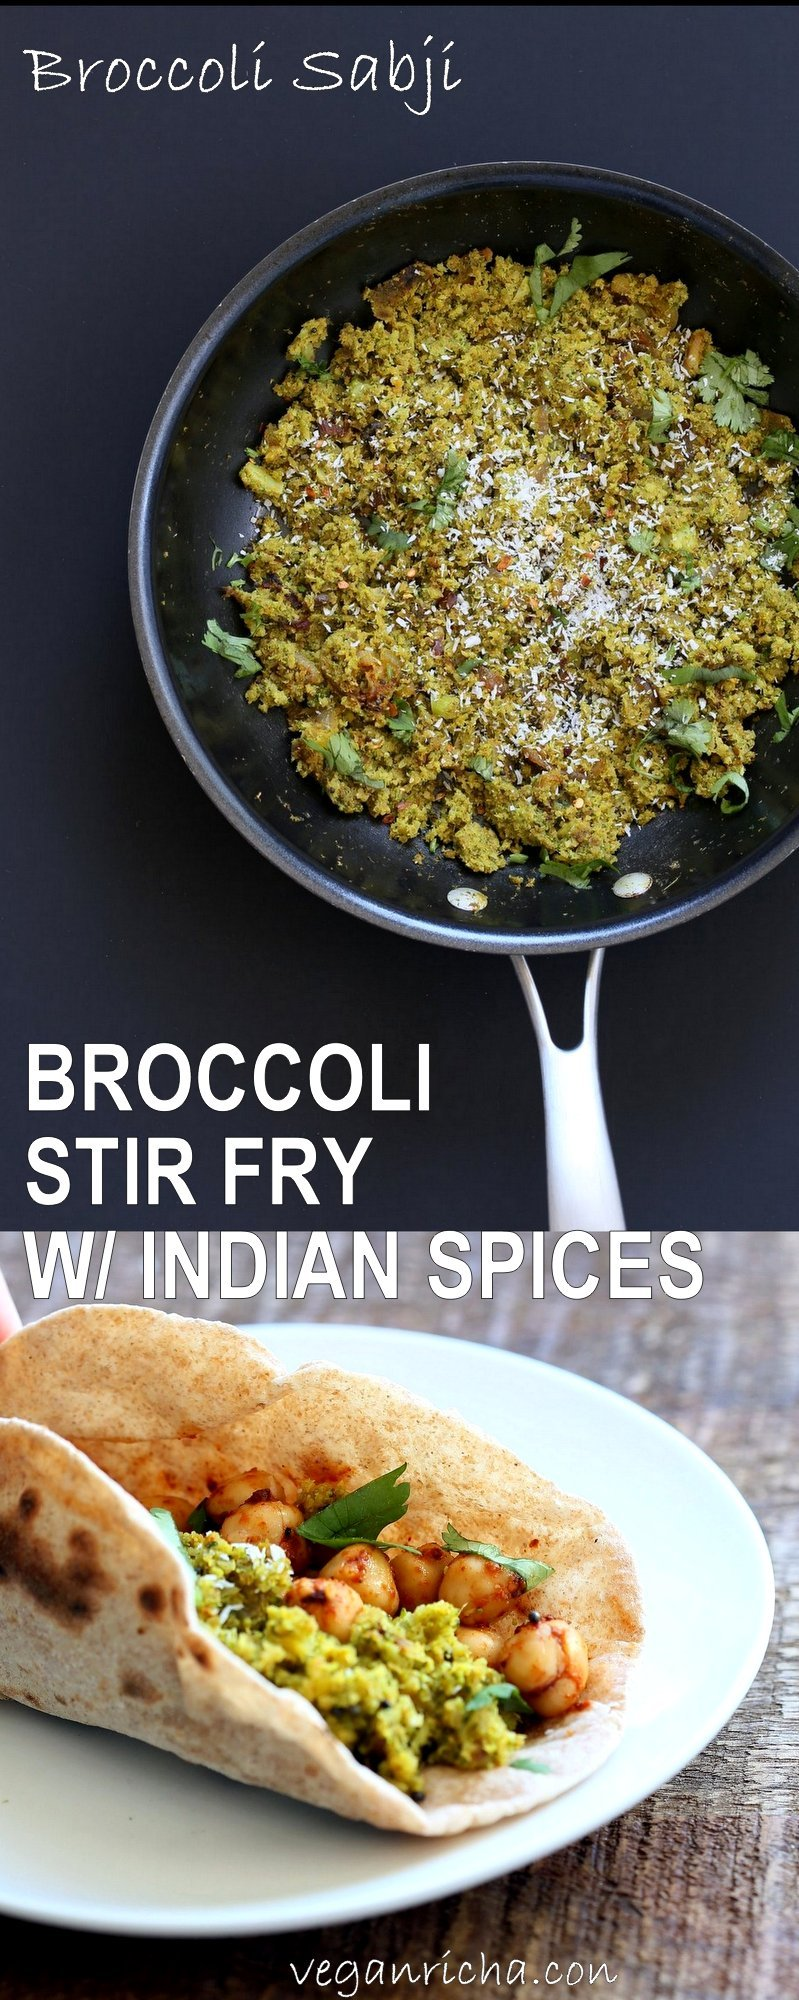 Broccoli Stir fry with Indian Spices - Broccoli Sabji with mustard seeds, coriander, fenugreek, turmeric and cinnamon. 1 pot, 20 mins.Vegan Gluten-free Soy-free Broccoli Recipe. Serve as a side, or with dal, or fill up a taco or wrap.